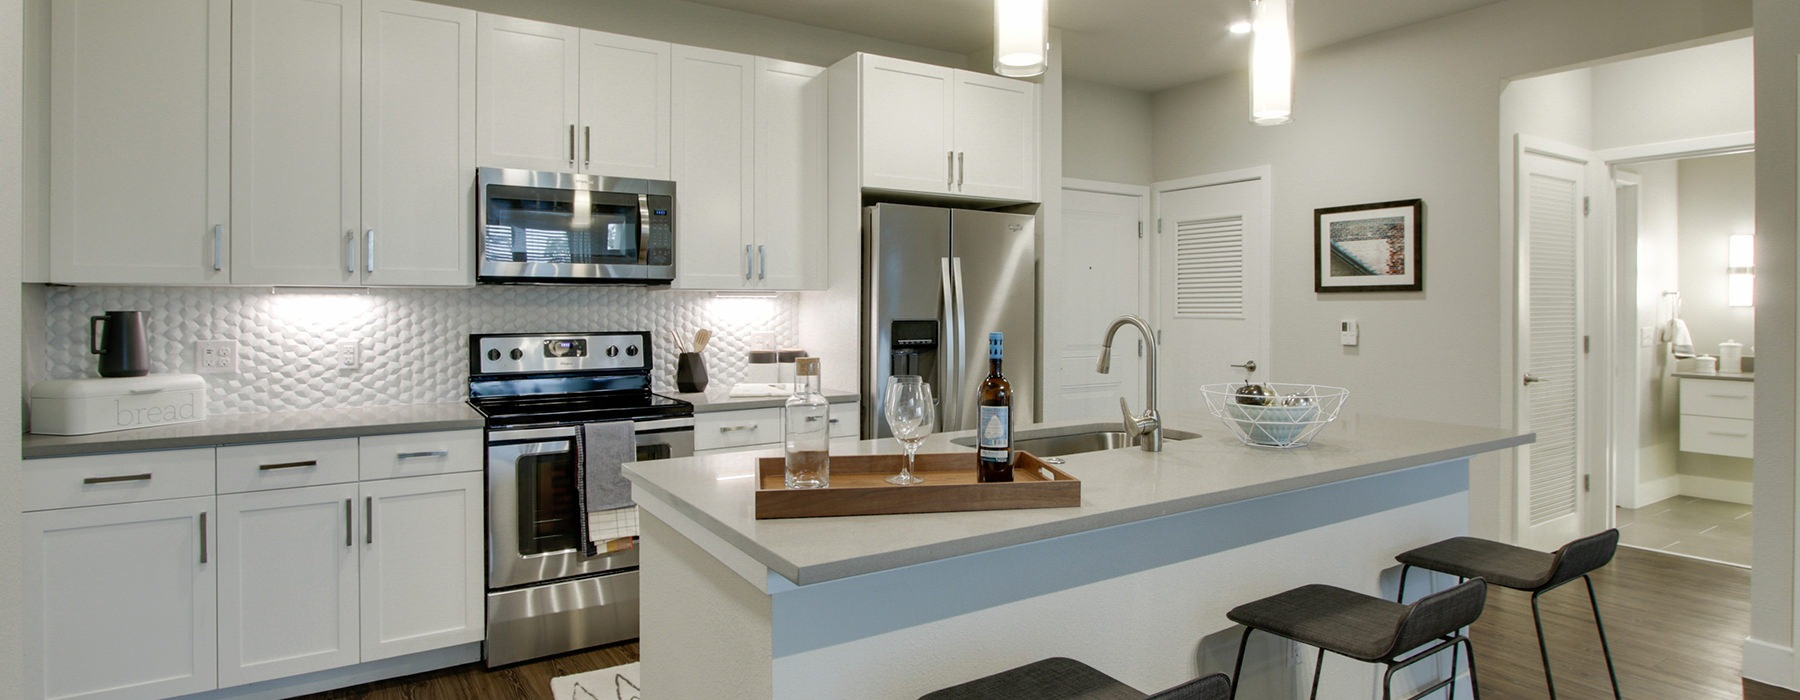 large kitchen with overhead lighting